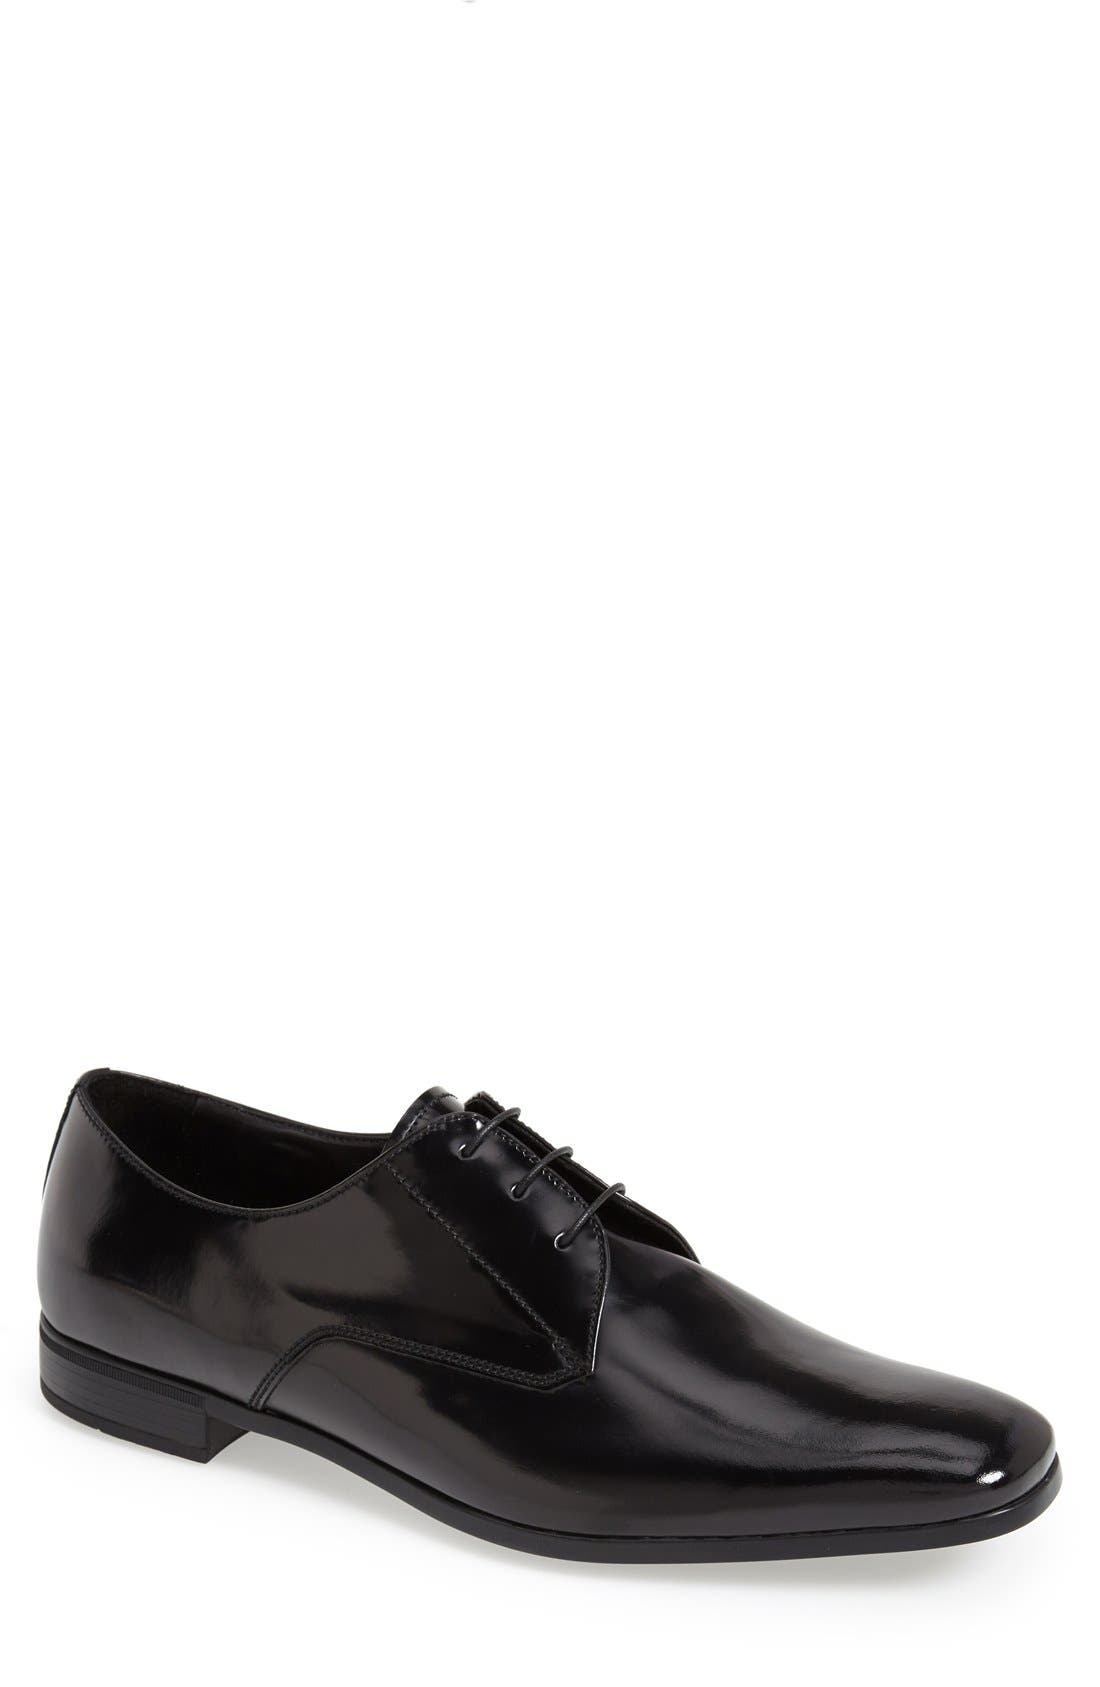 Alternate Image 1 Selected - Prada Spazzalato Plain Toe Derby (Men)